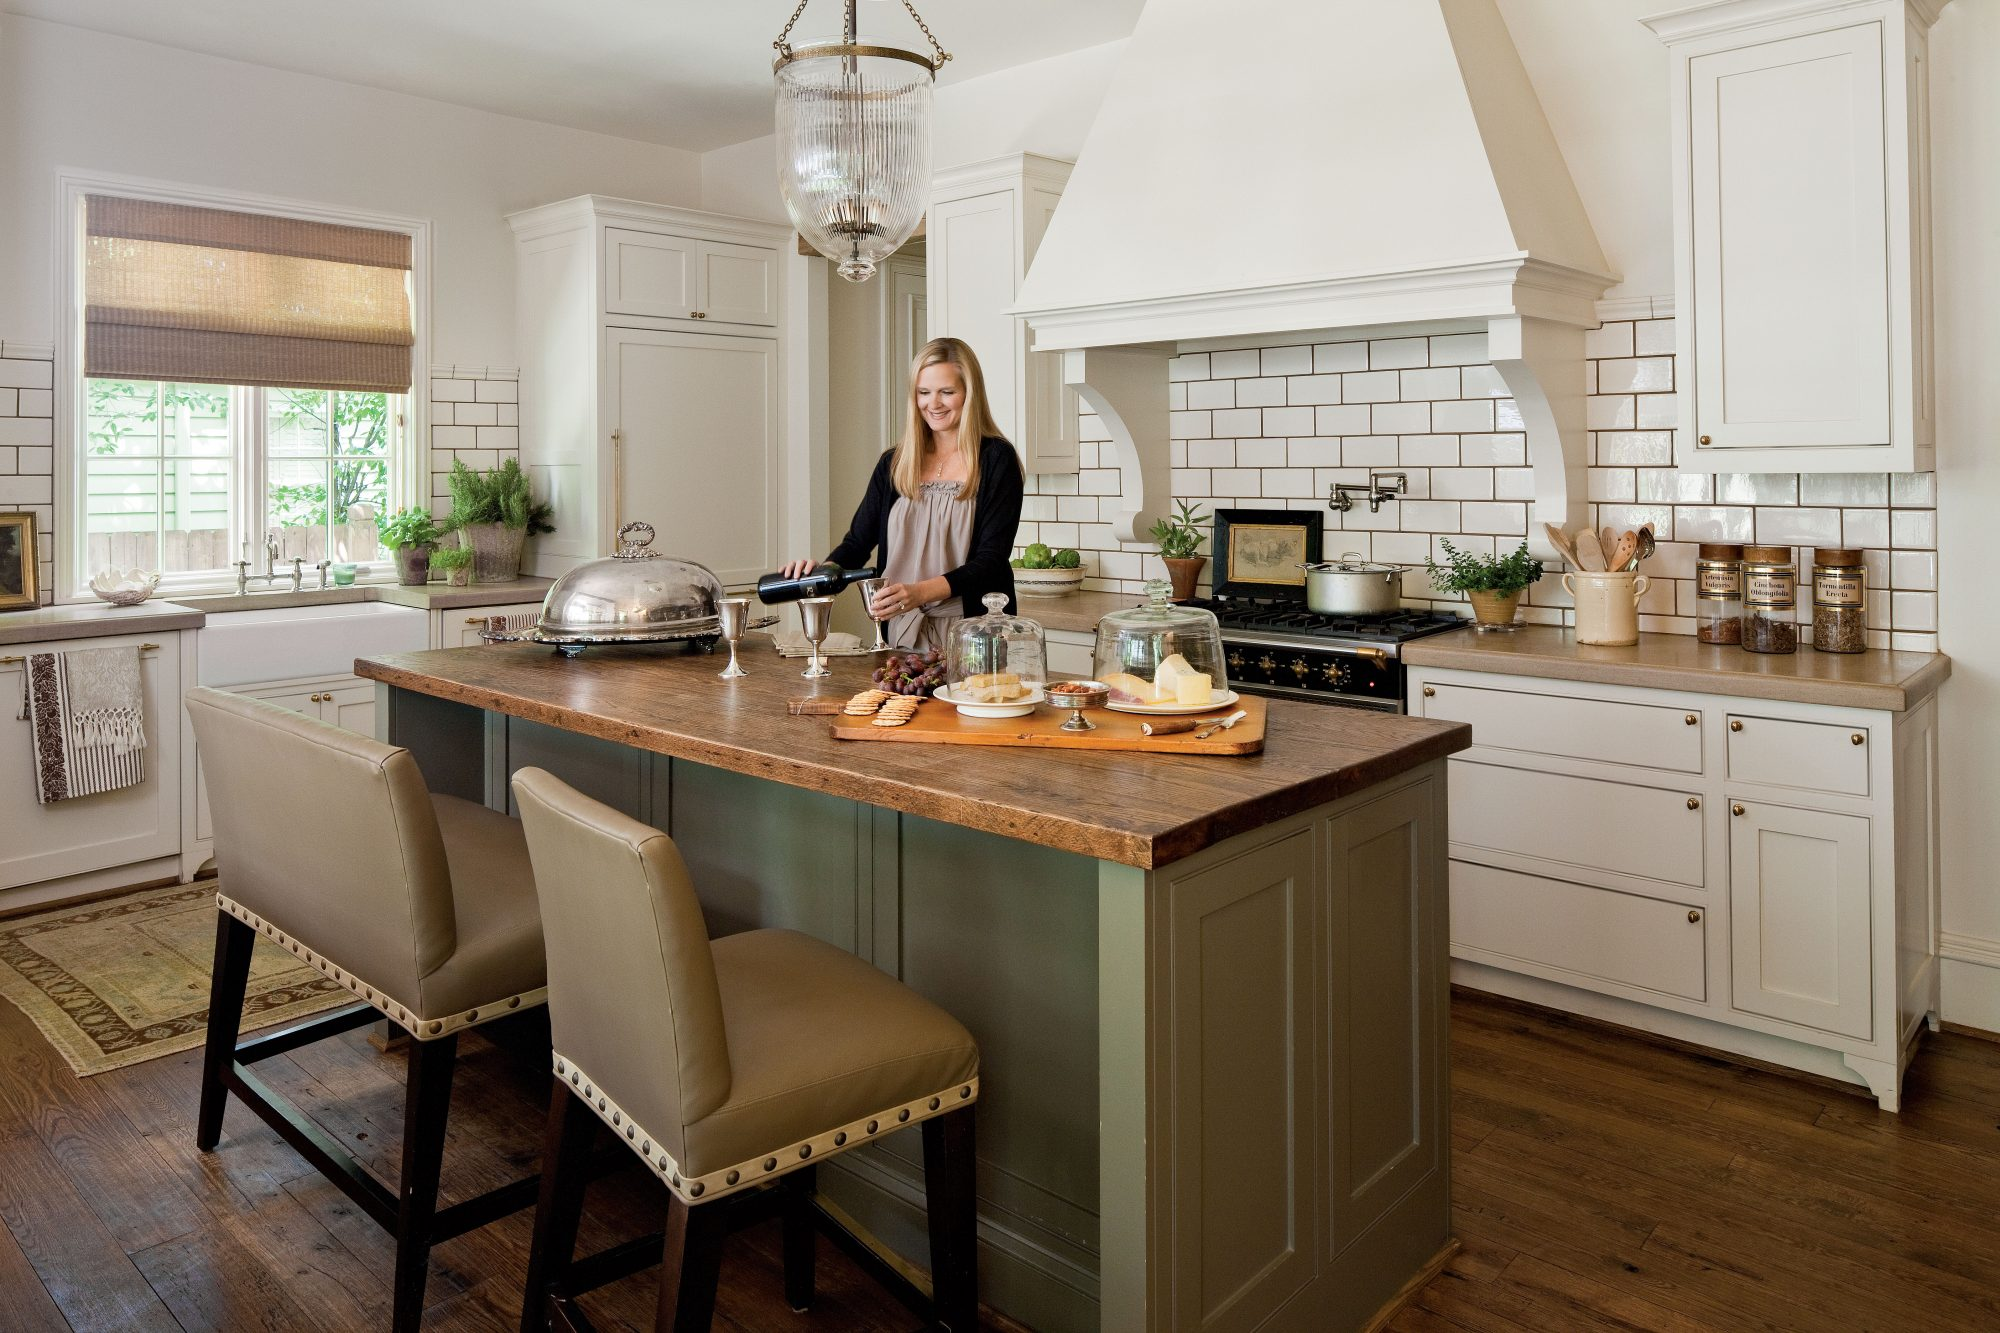 Dream kitchen design ideas southern living for Southern kitchen design